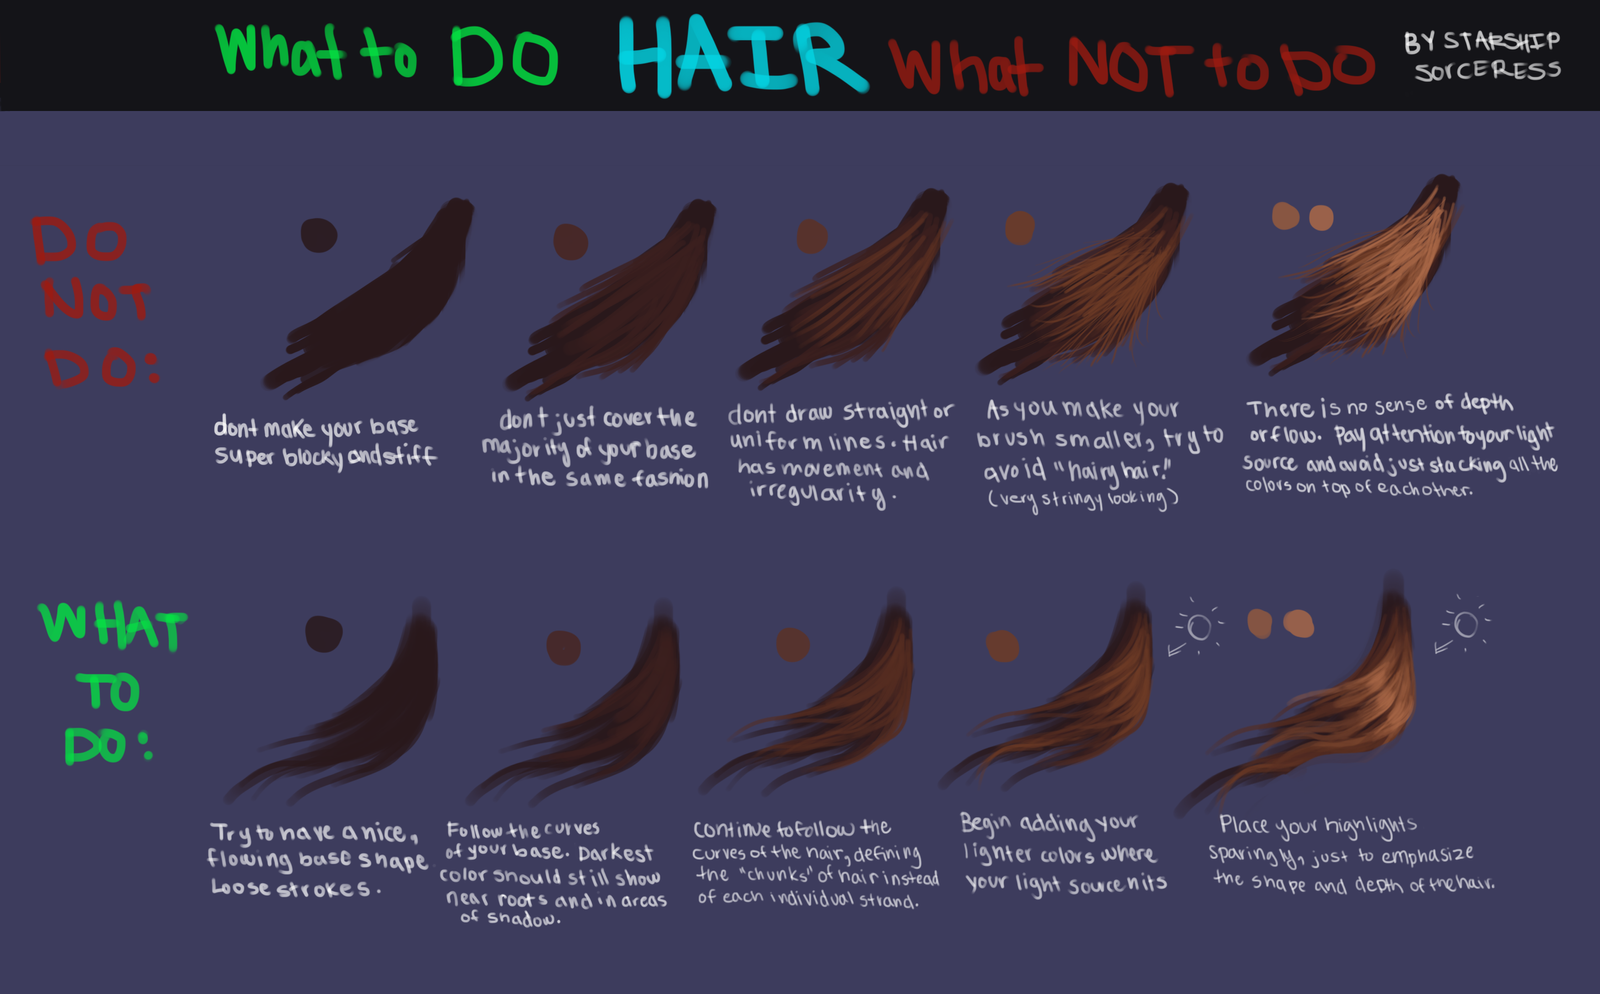 Hair: What to Do vs. What NOT to Do by StarshipSorceress ...